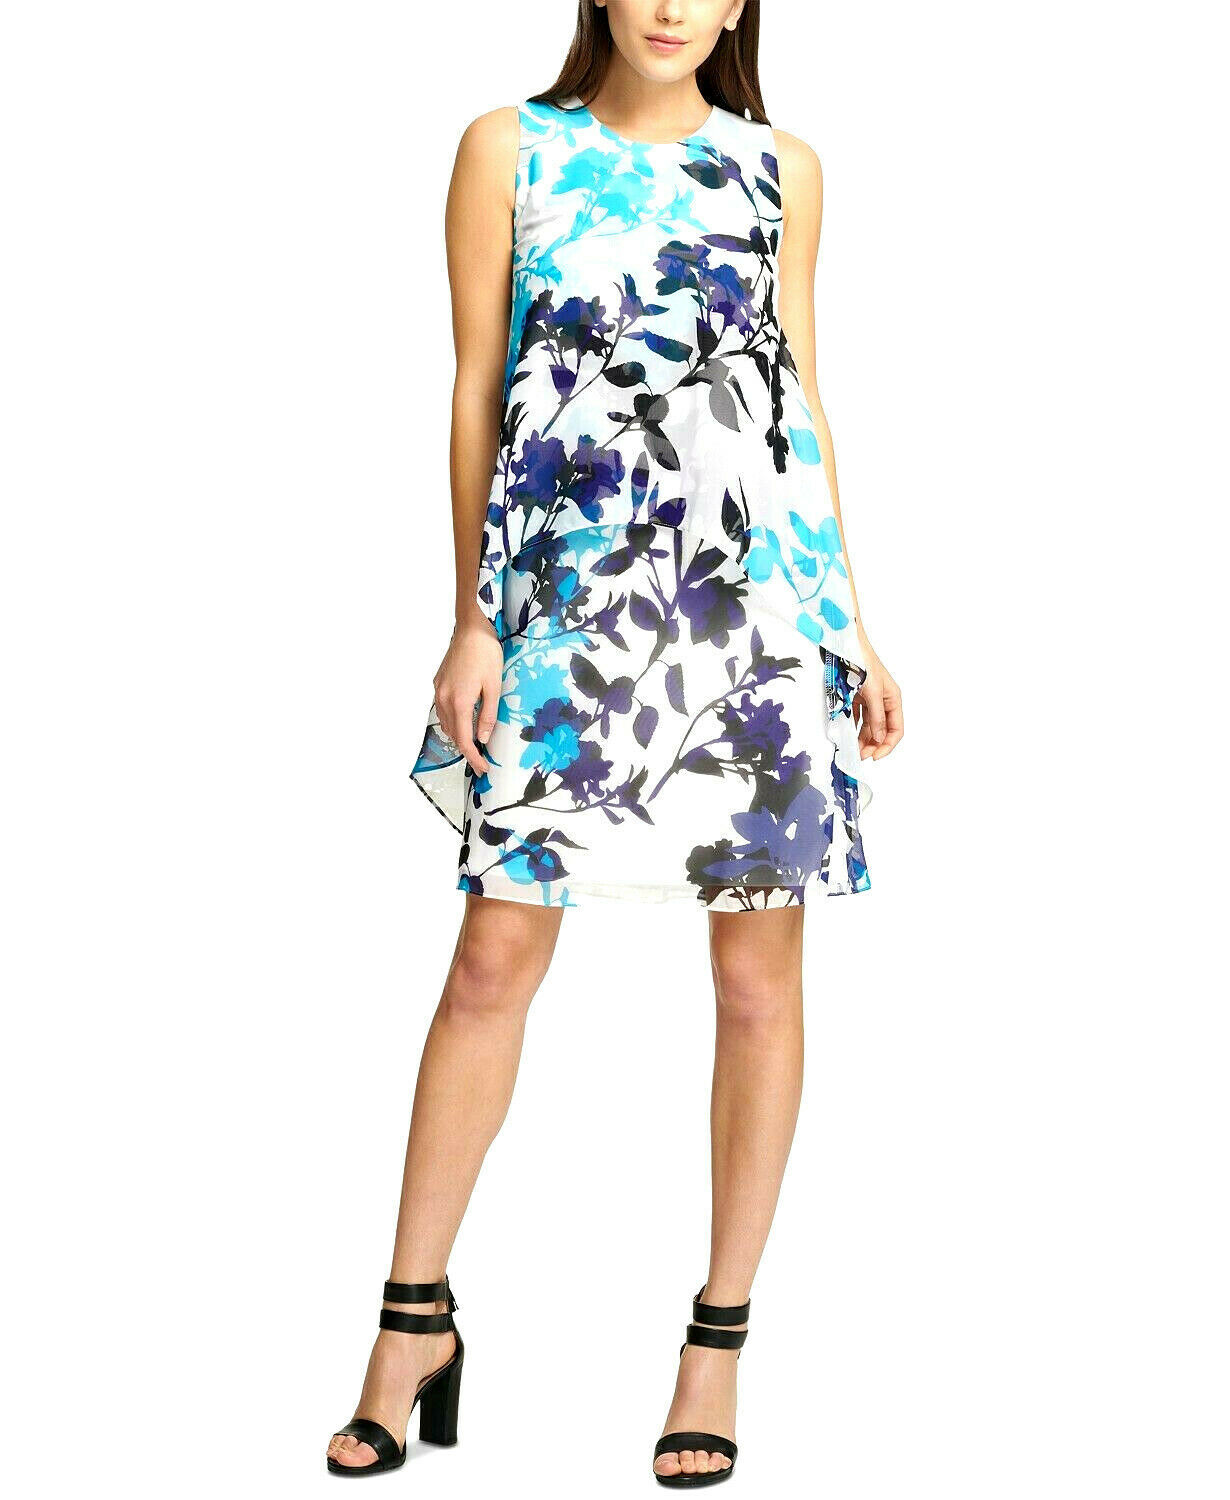 Primary image for DKNY Women's Turquoise Blue Multi Floral-Print Swing Trapeze Dress Size 12 $129